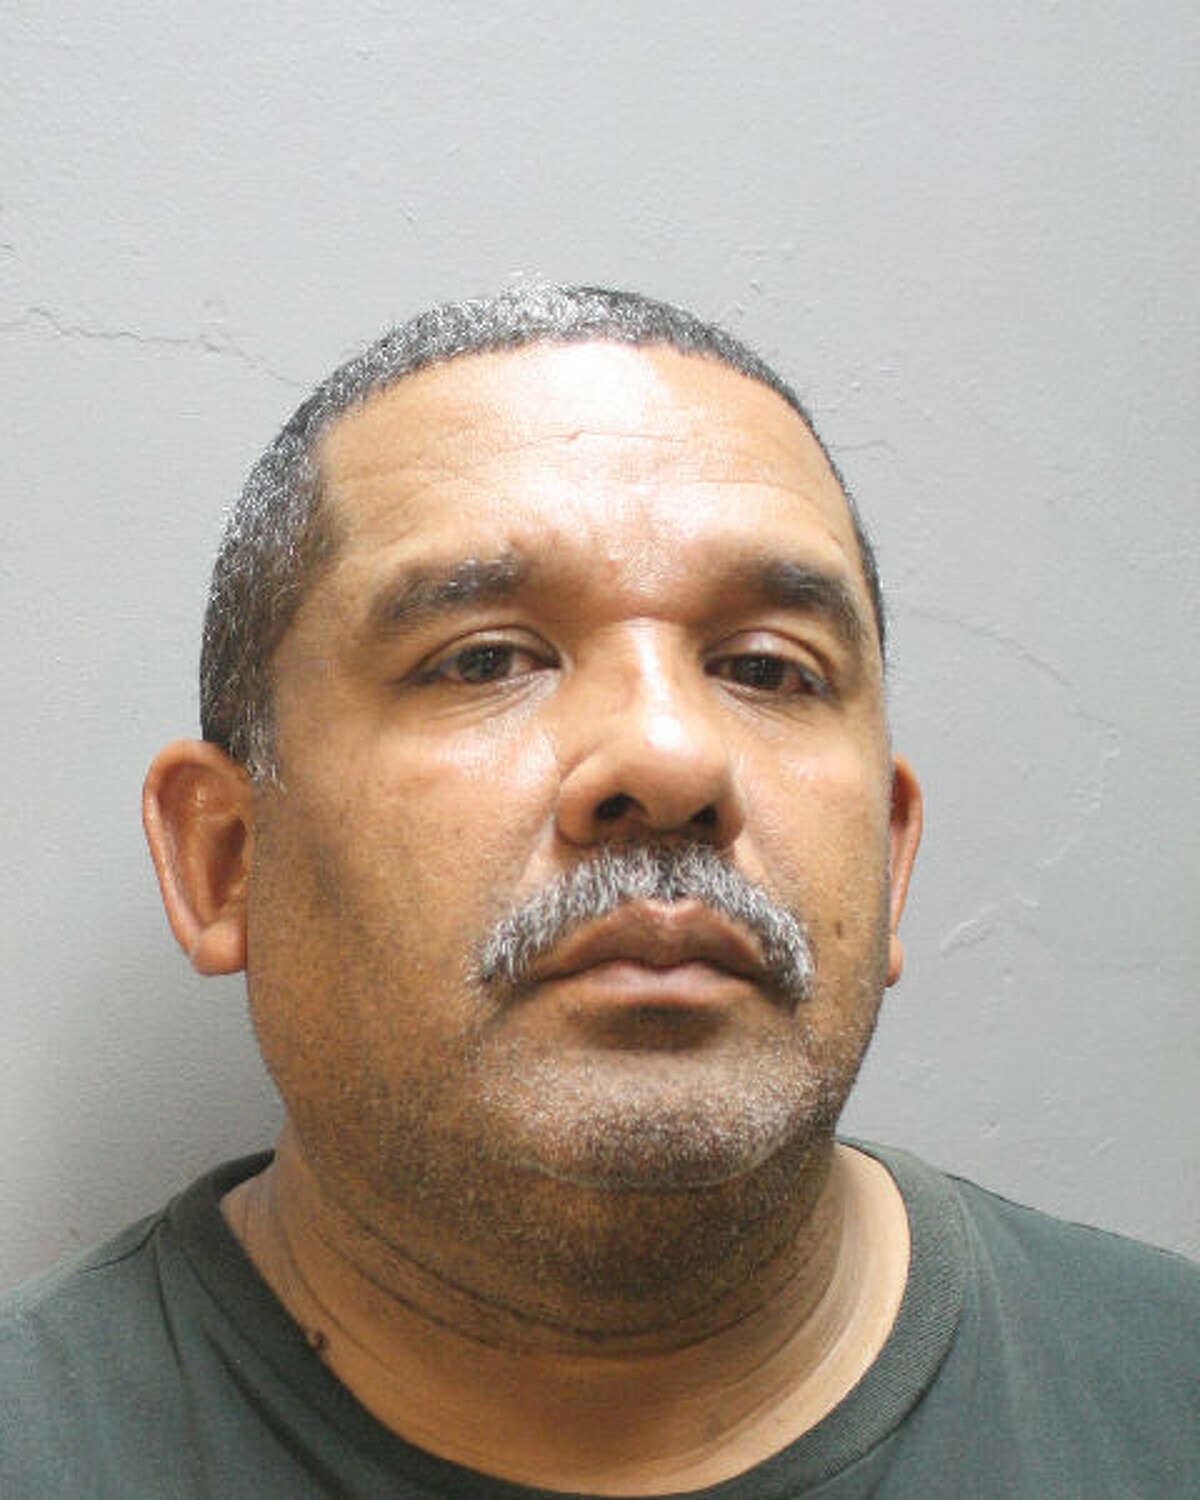 Victor Torres is facing charges for allegedly being involved in a scheme that involves stealing cars from Houston dealerships and reselling them online through Craigslist and OfferUp.